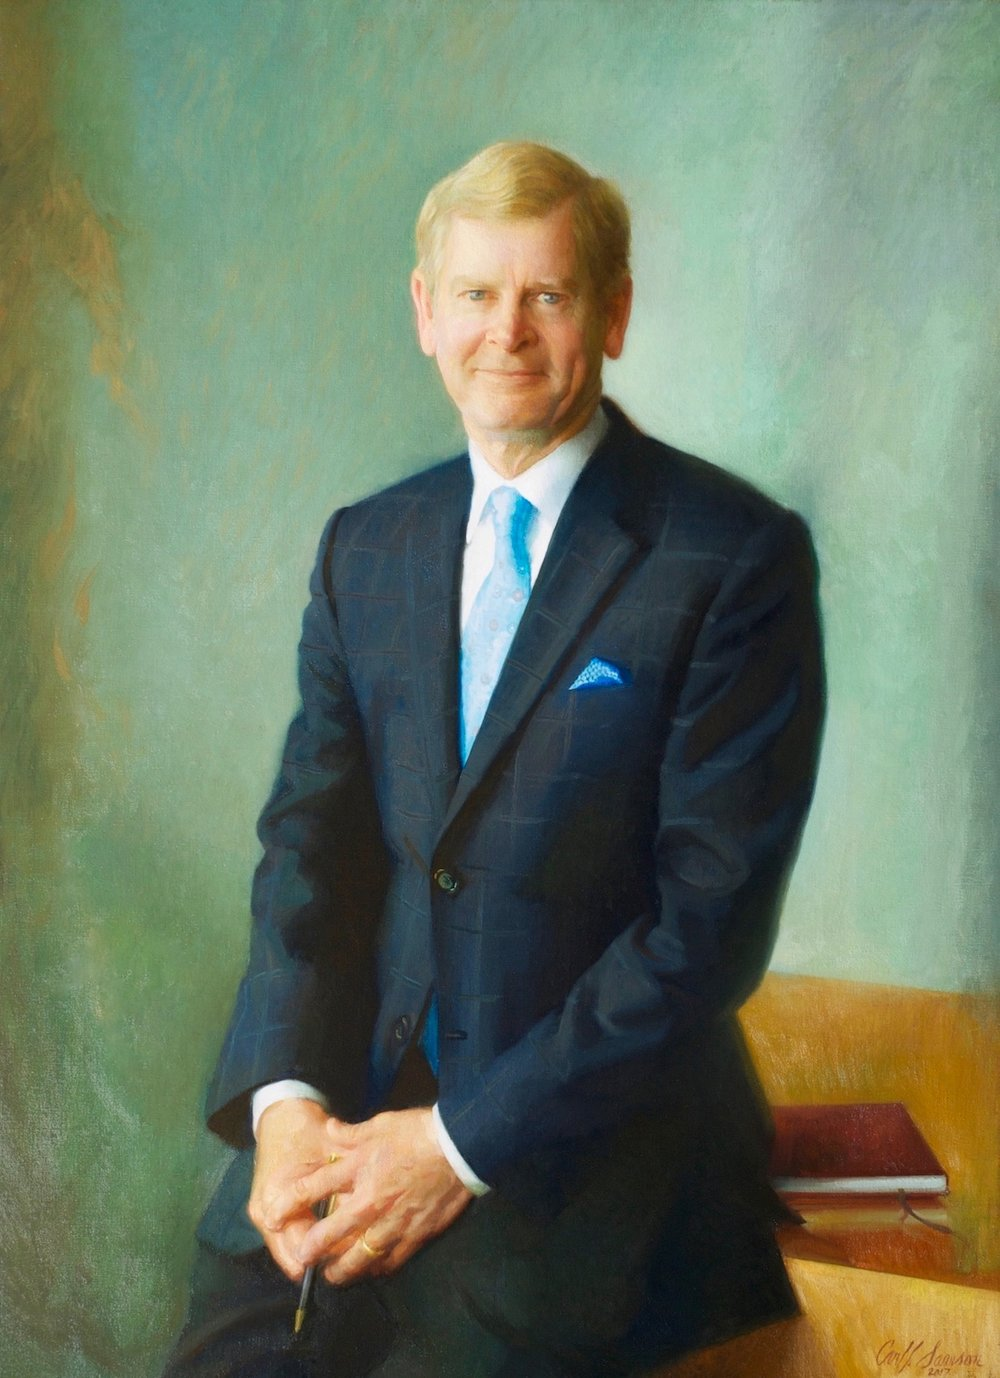 "Oil Portrait of David S. Taylor, CEO , 46"" x 34"", oil on linen canvas, Procter & Gamble collection"